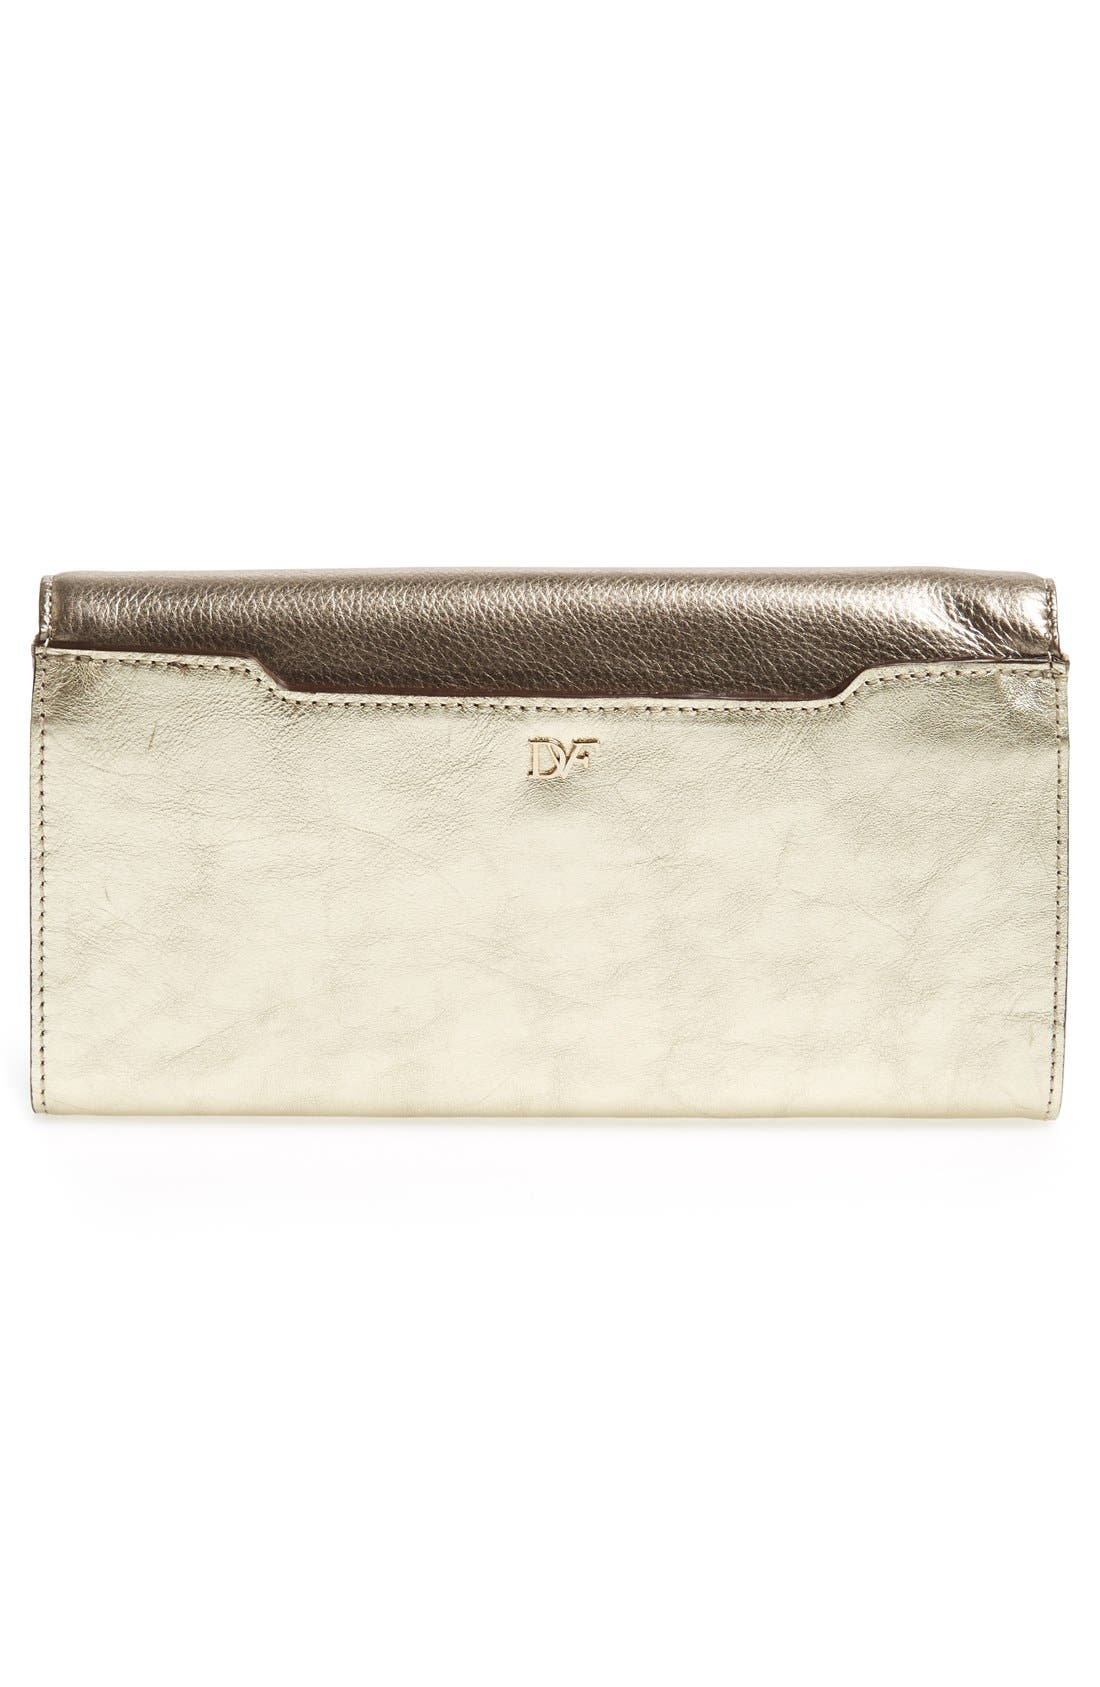 '440 - Mixed Metallic' Envelope Clutch,                             Alternate thumbnail 5, color,                             710